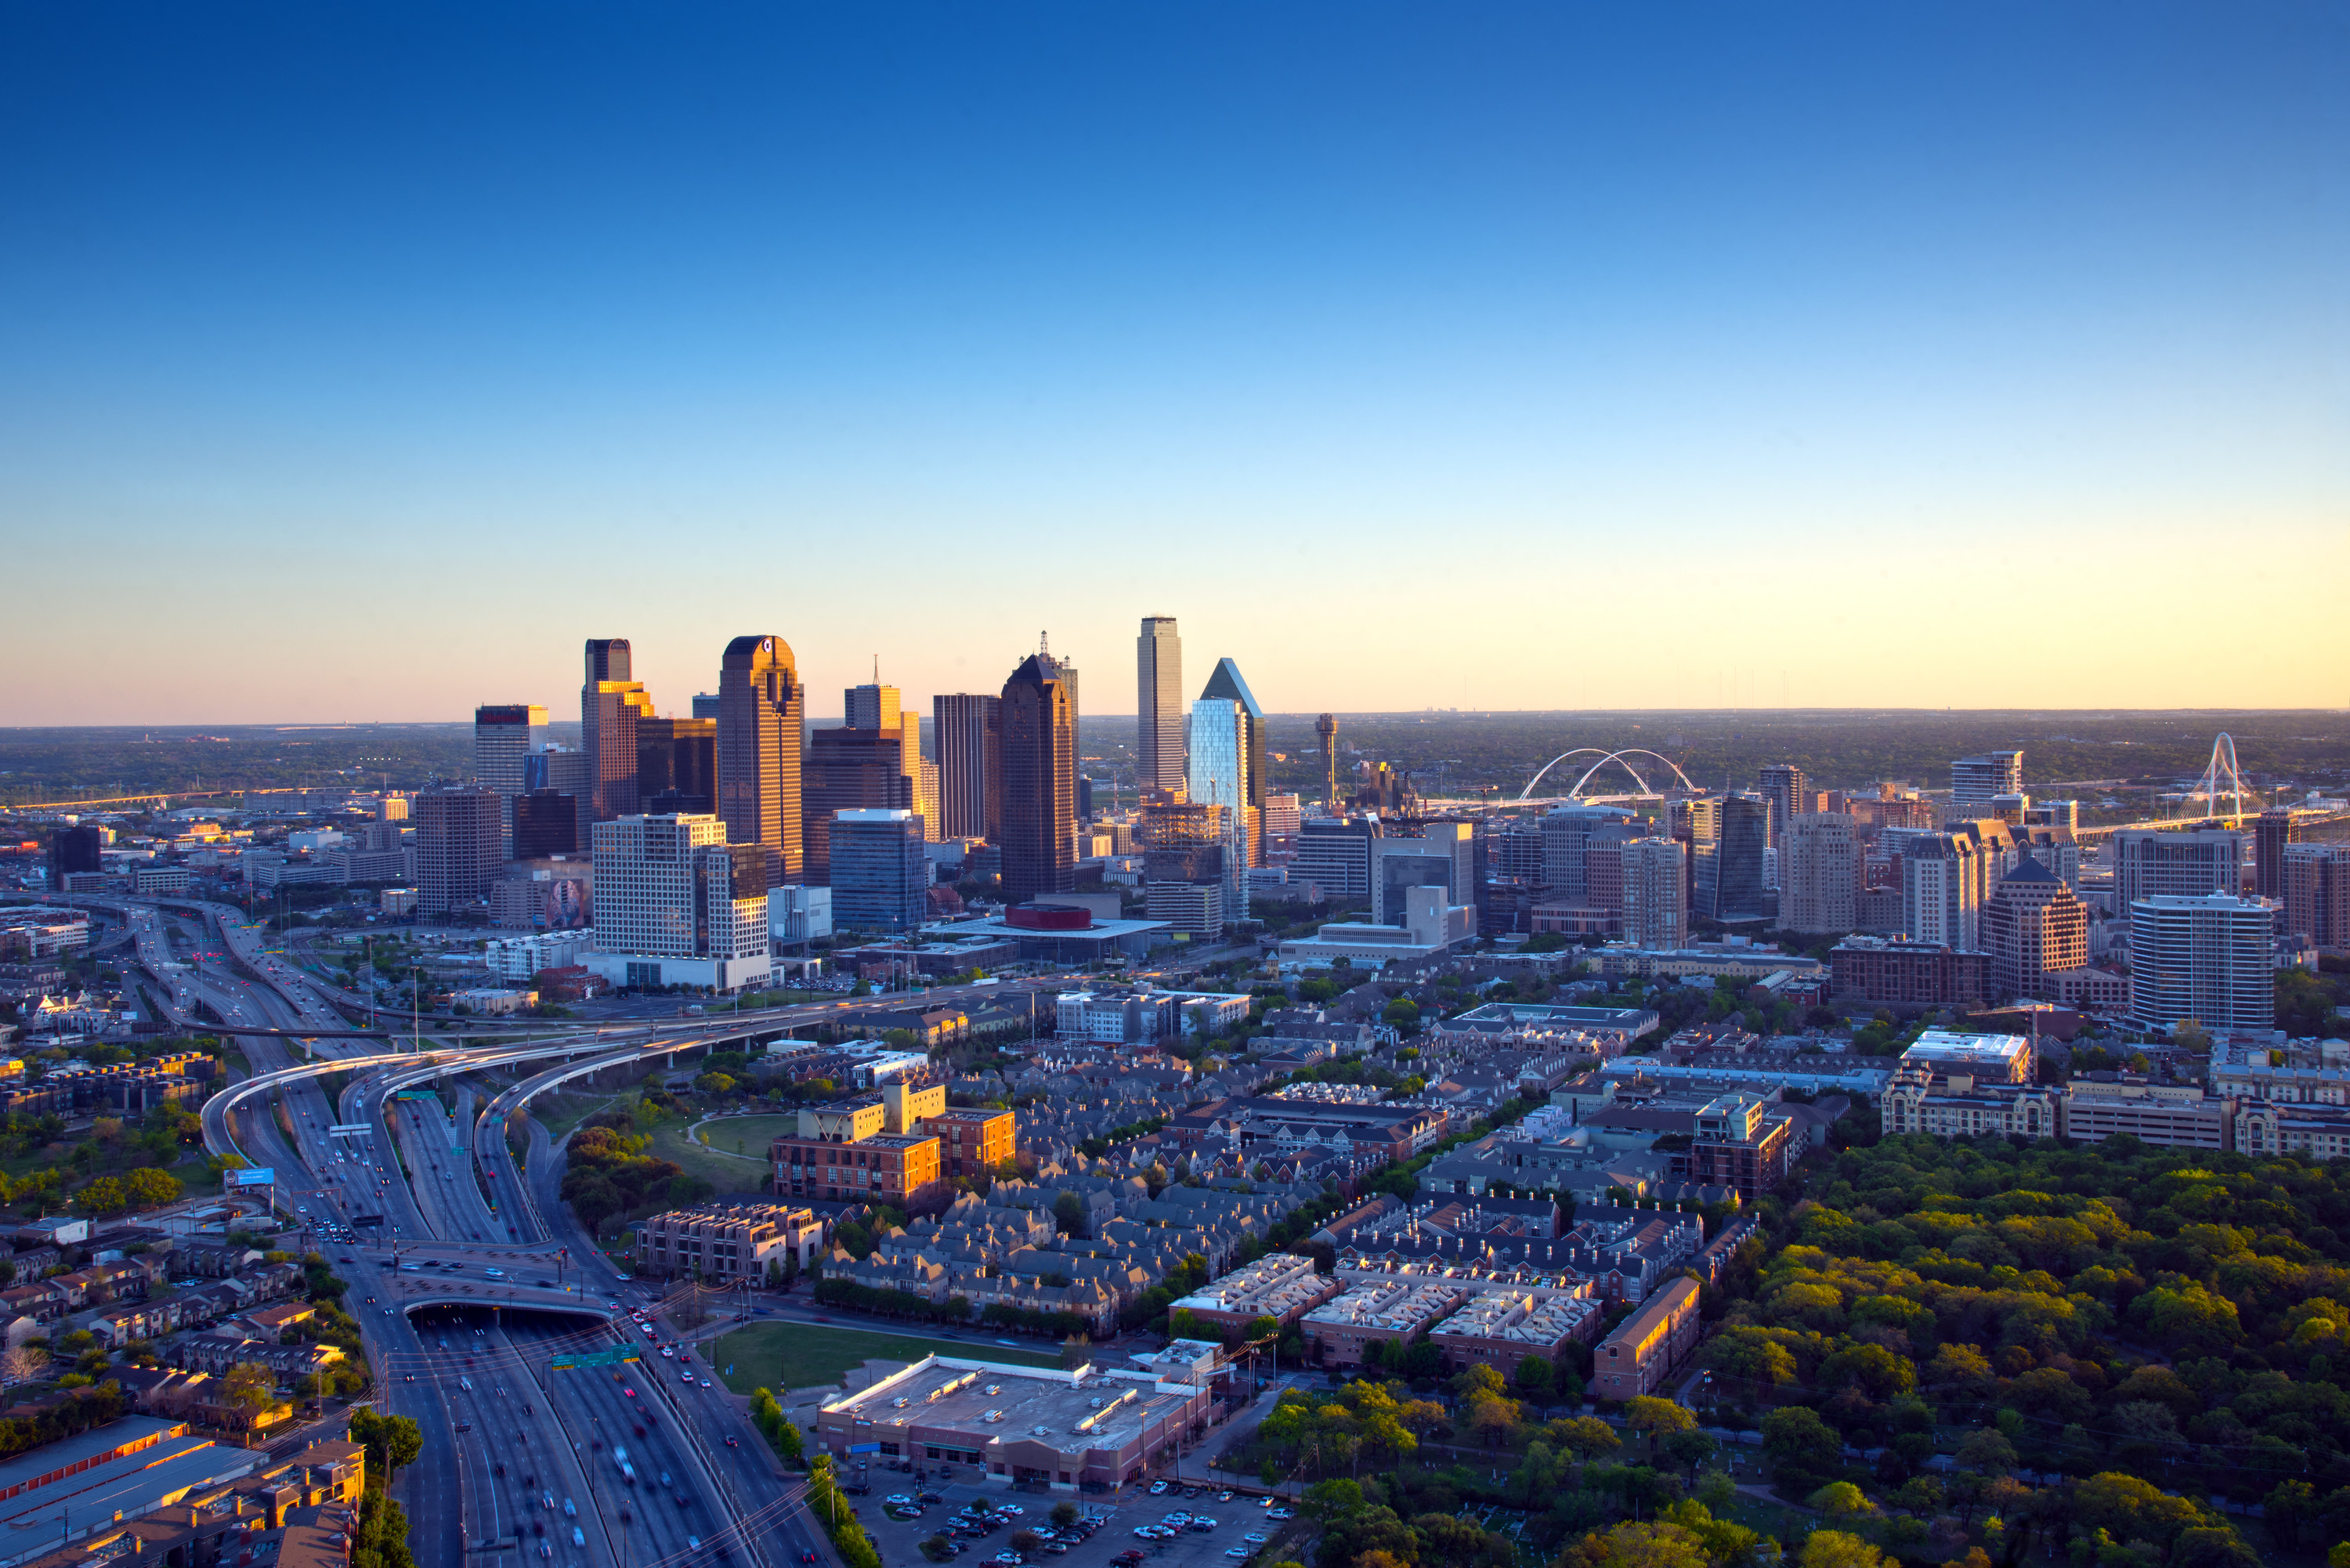 View over the city of Dallas